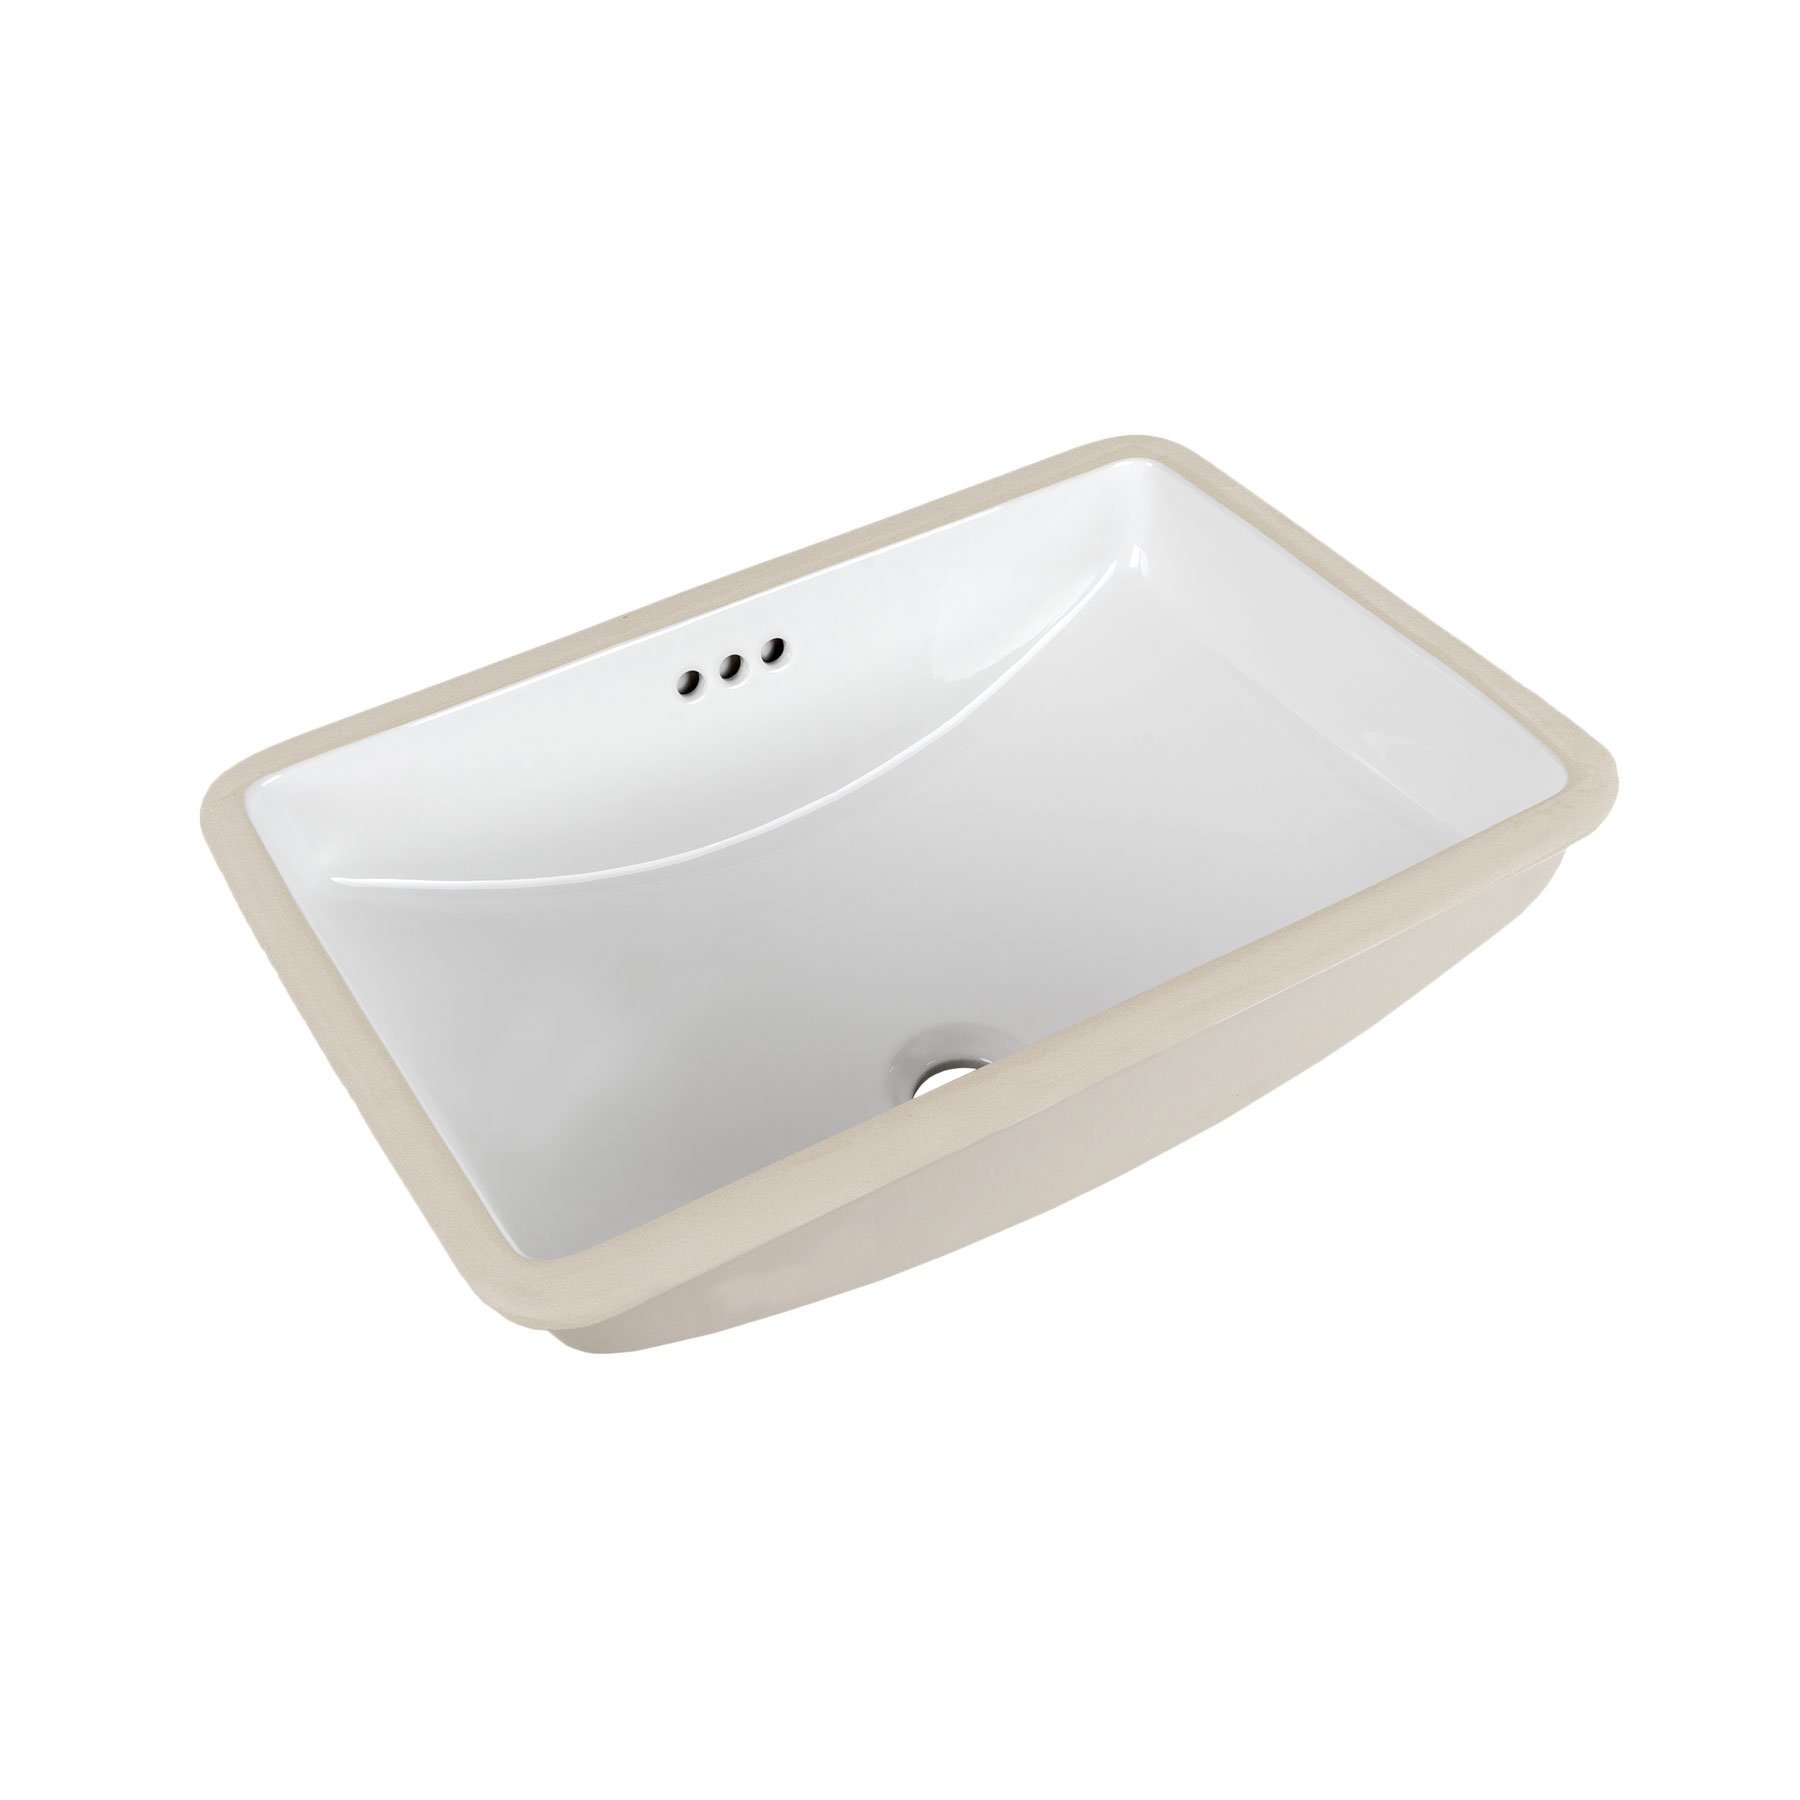 MAYKKE Bristol Ceramic Undermount Bathroom Vanity Sink in White YSA1092001 by Maykke